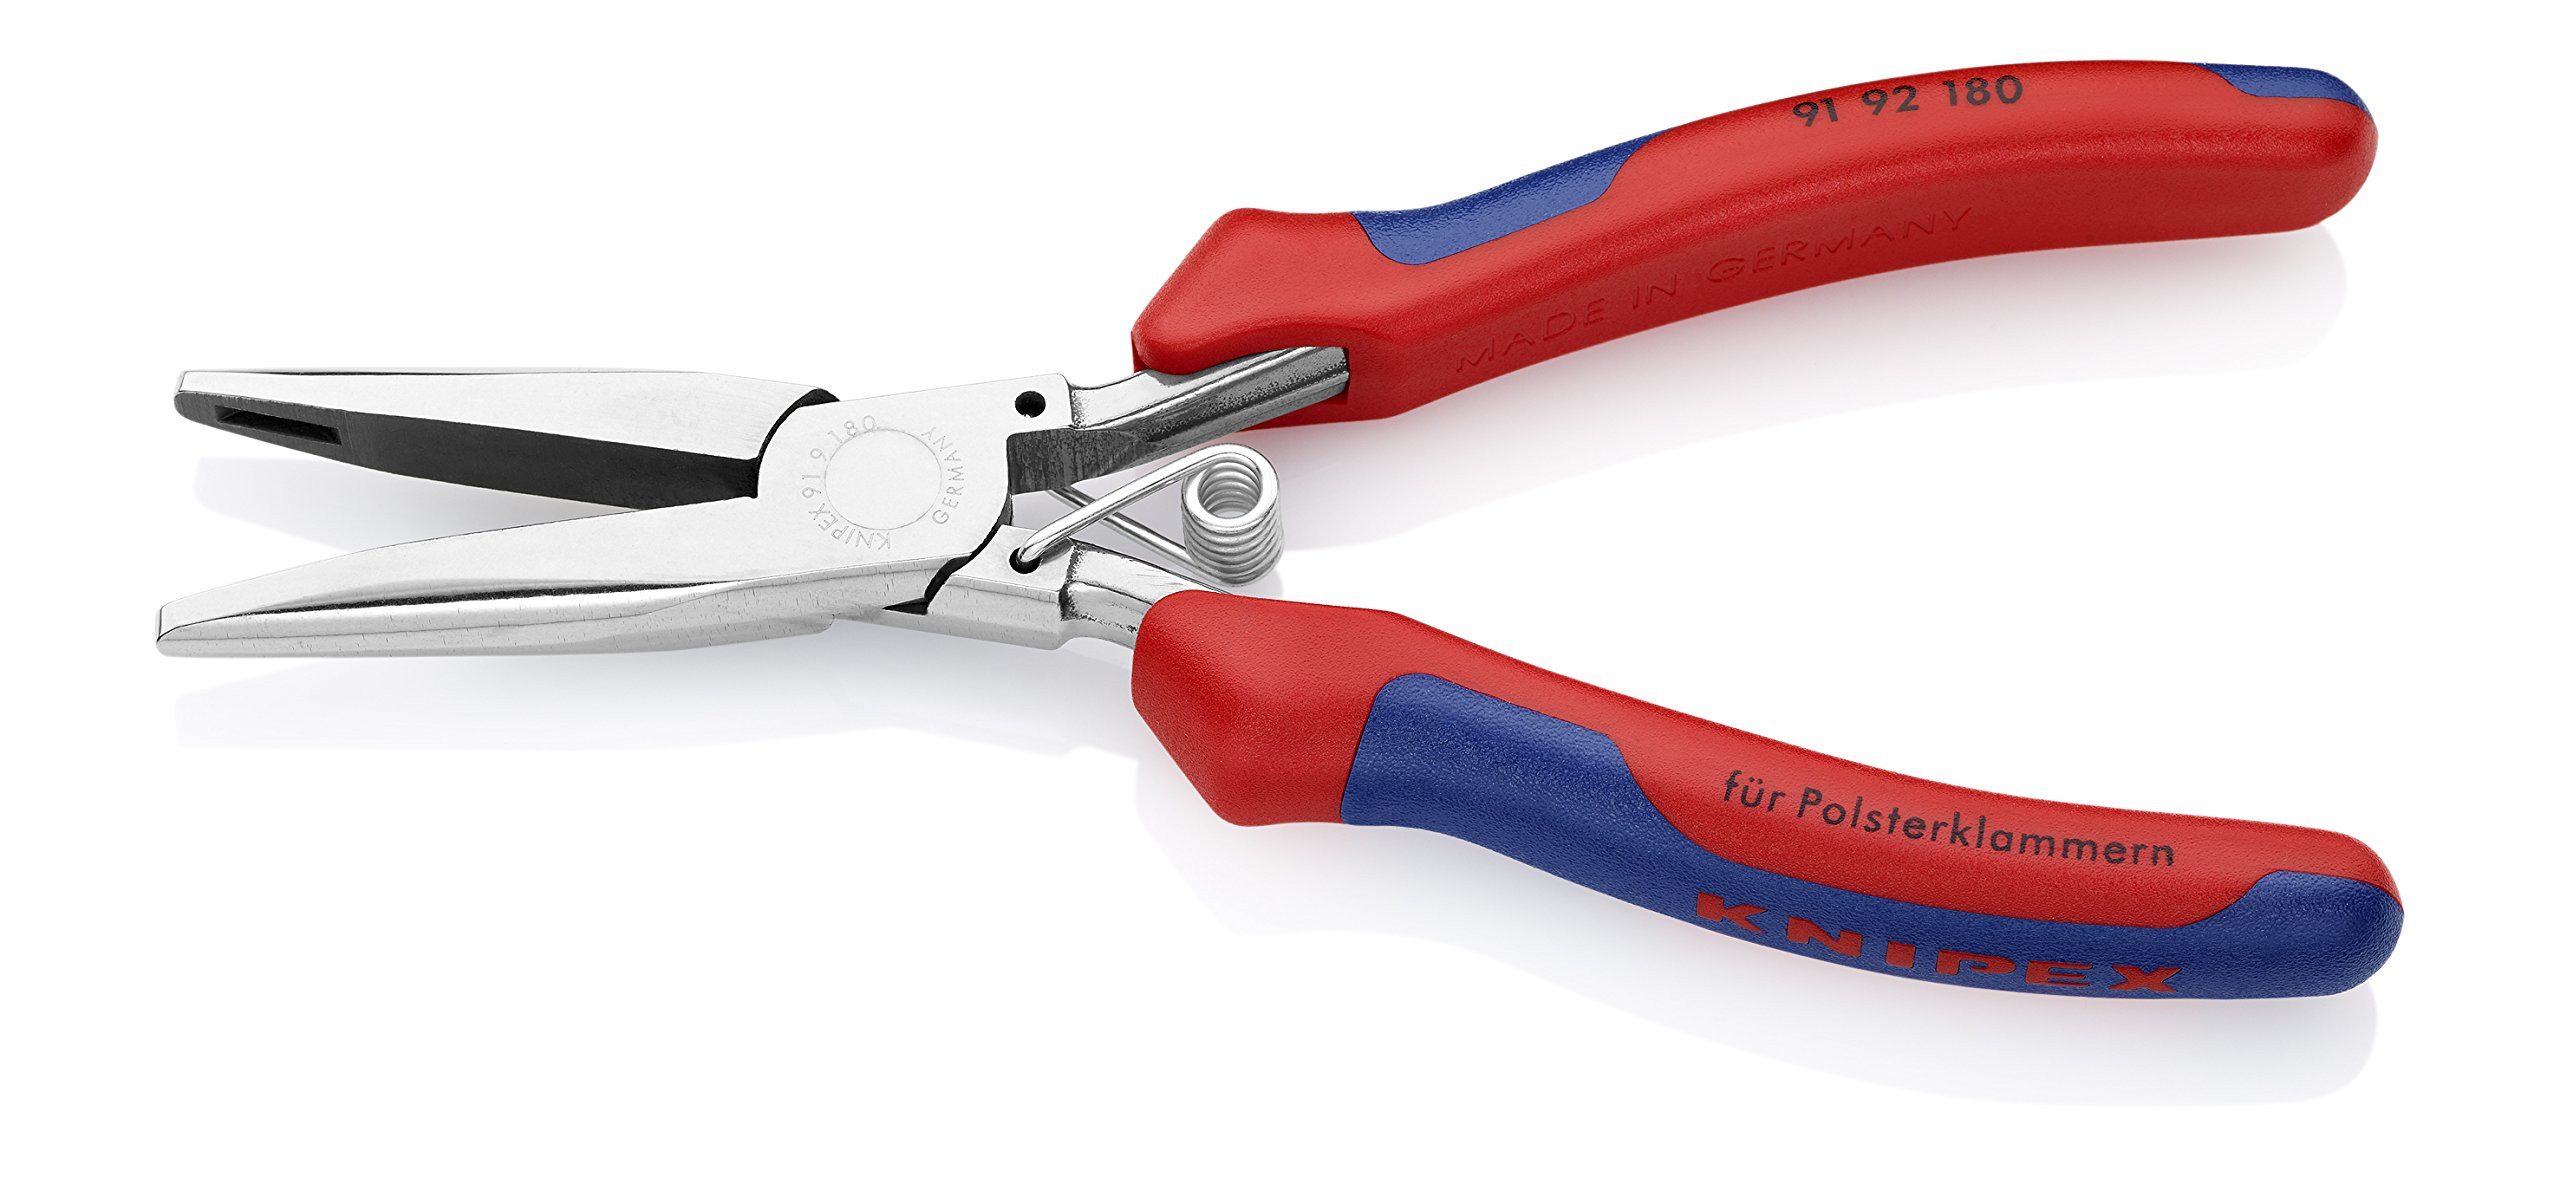 Knipex Tools 91 92 180 7'' Hog Ring Upholstery Pliers by KNIPEX Tools